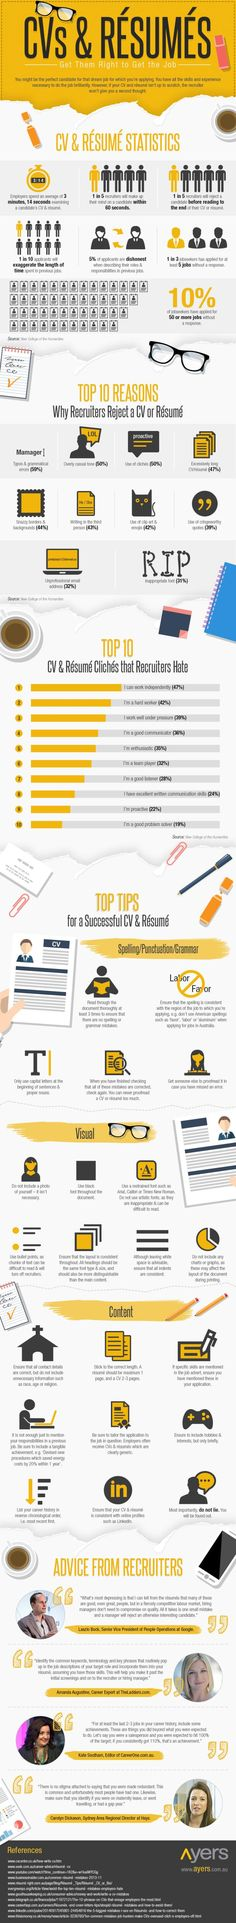 17 Tips to Impress Your Interviewer Infographic Sales Management